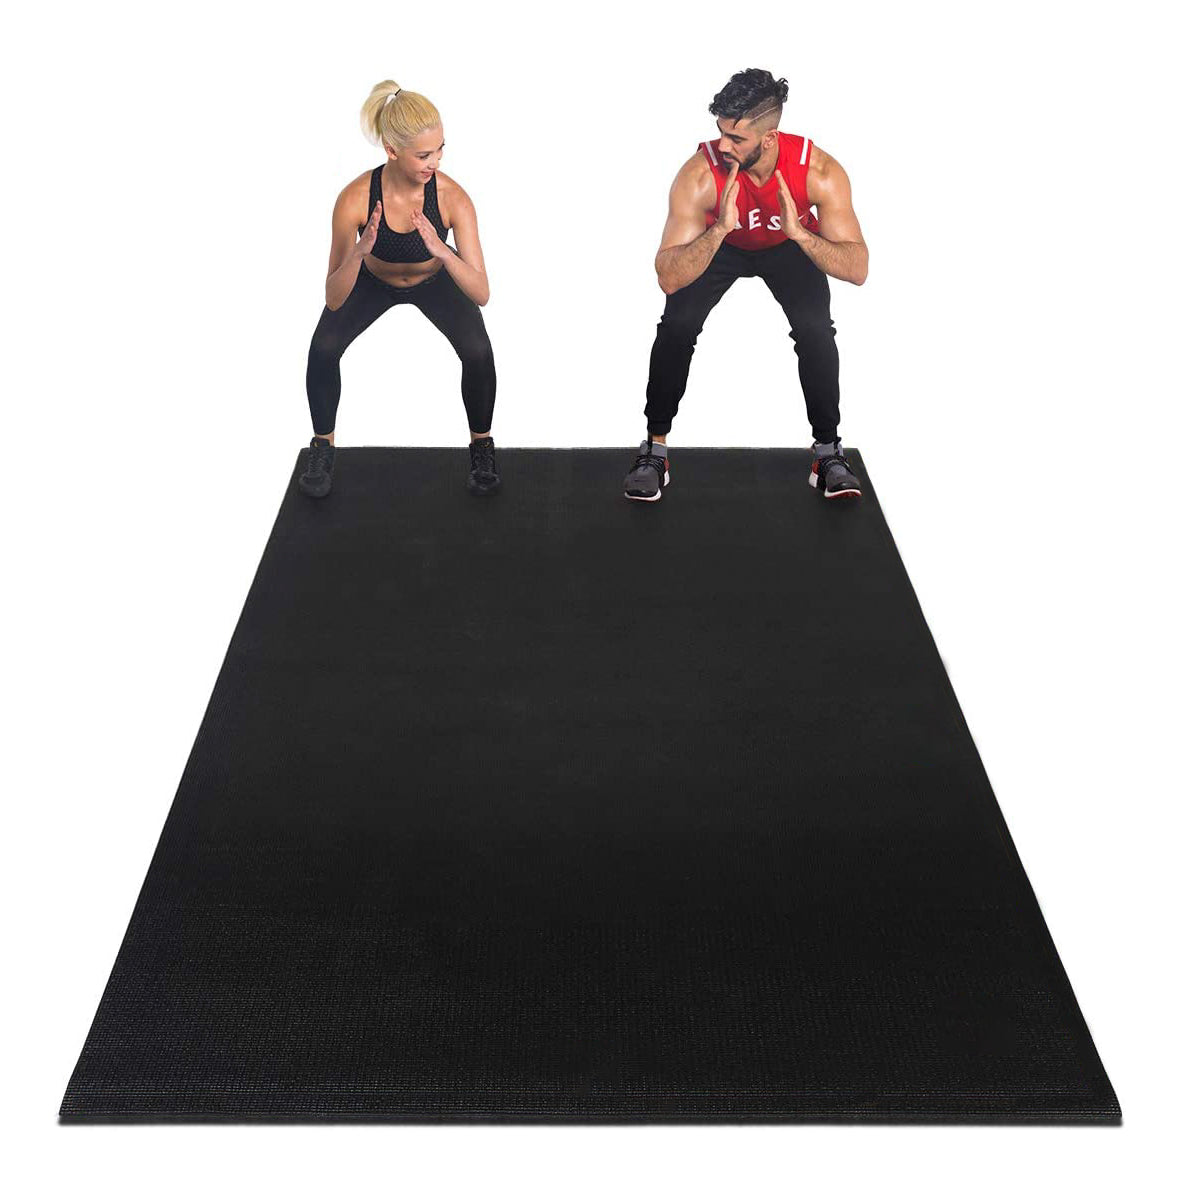 Heavy Duty Exercise Mat Ultra Durable, Non-Slip, Workout Mats for Home Gym Flooring